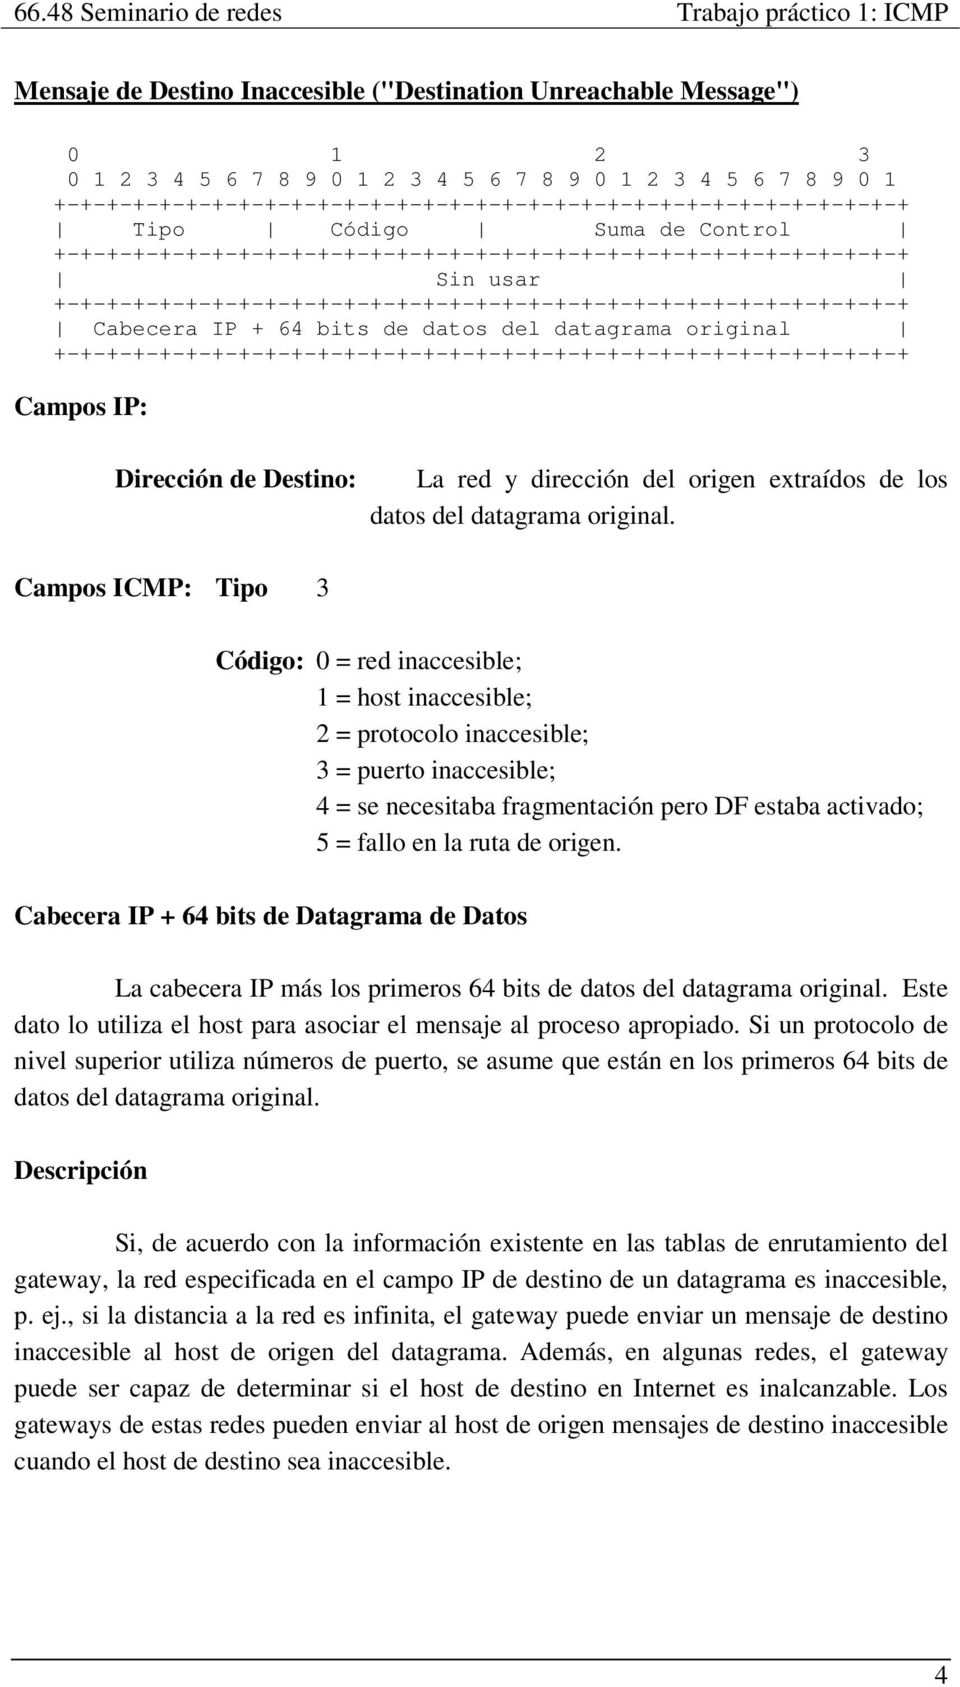 Código: 0 = red inaccesible; 1 = host inaccesible; 2 = protocolo inaccesible; 3 = puerto inaccesible; 4 = se necesitaba fragmentación pero DF estaba activado; 5 = fallo en la ruta de origen.